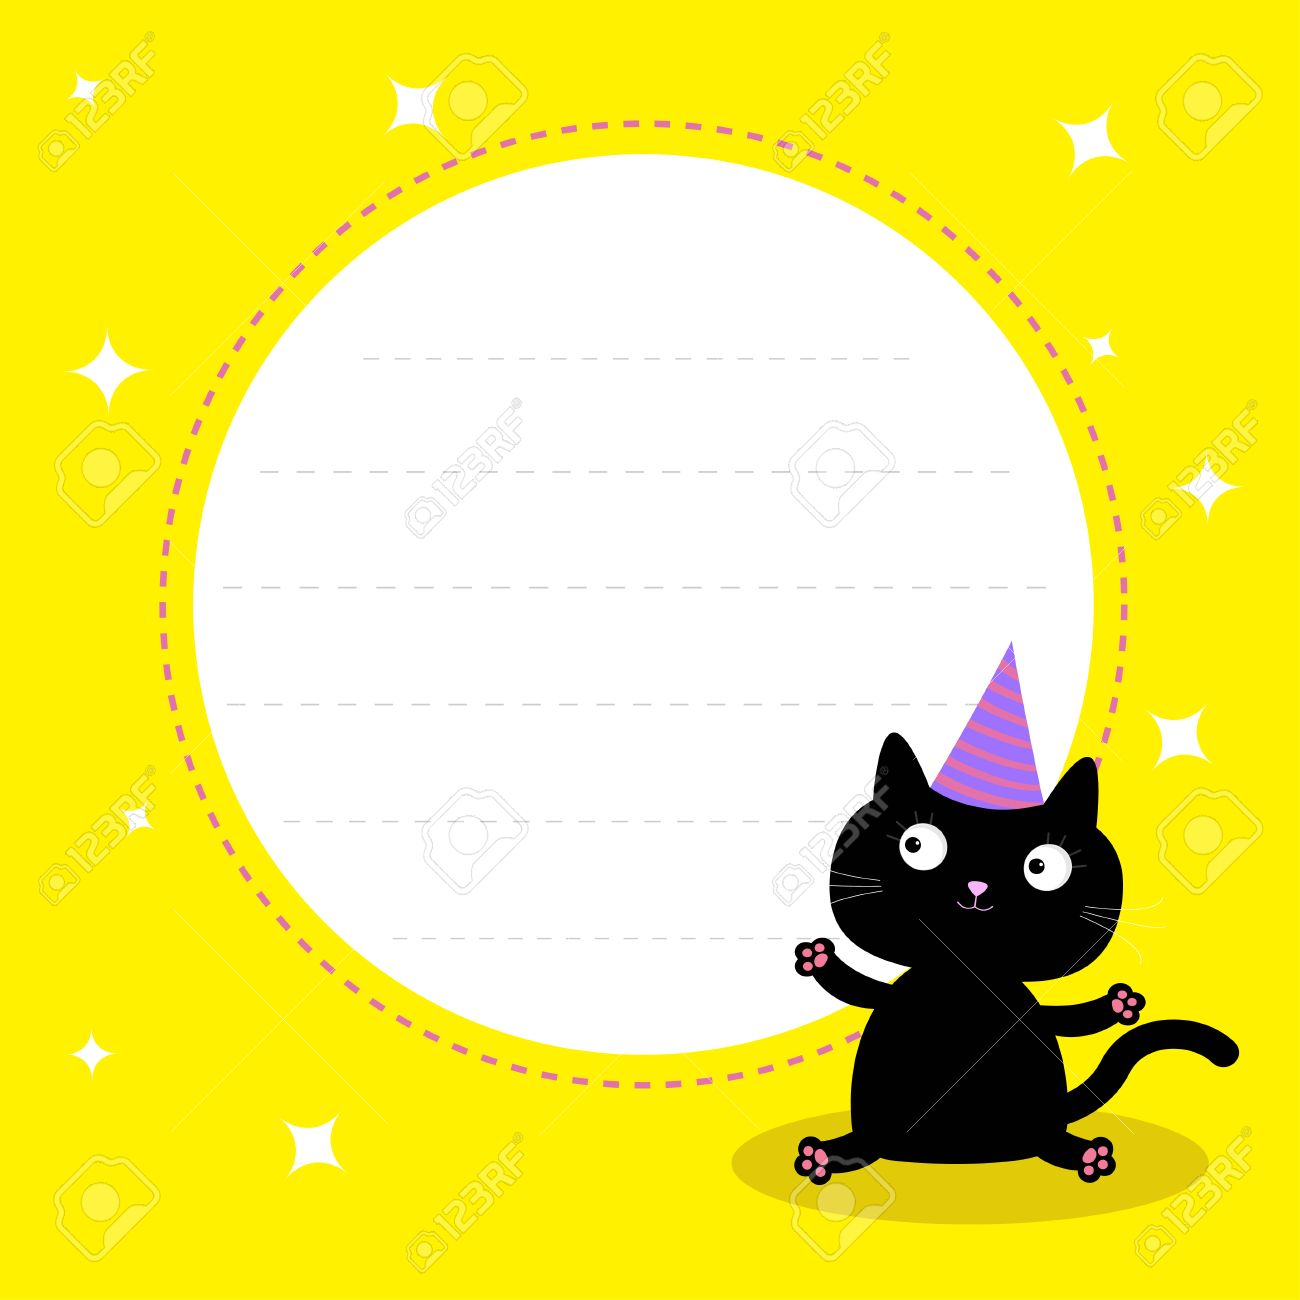 Frame With Cute Cartoon Black Cat Hat Happy Birthday Party Card Vector Illustration